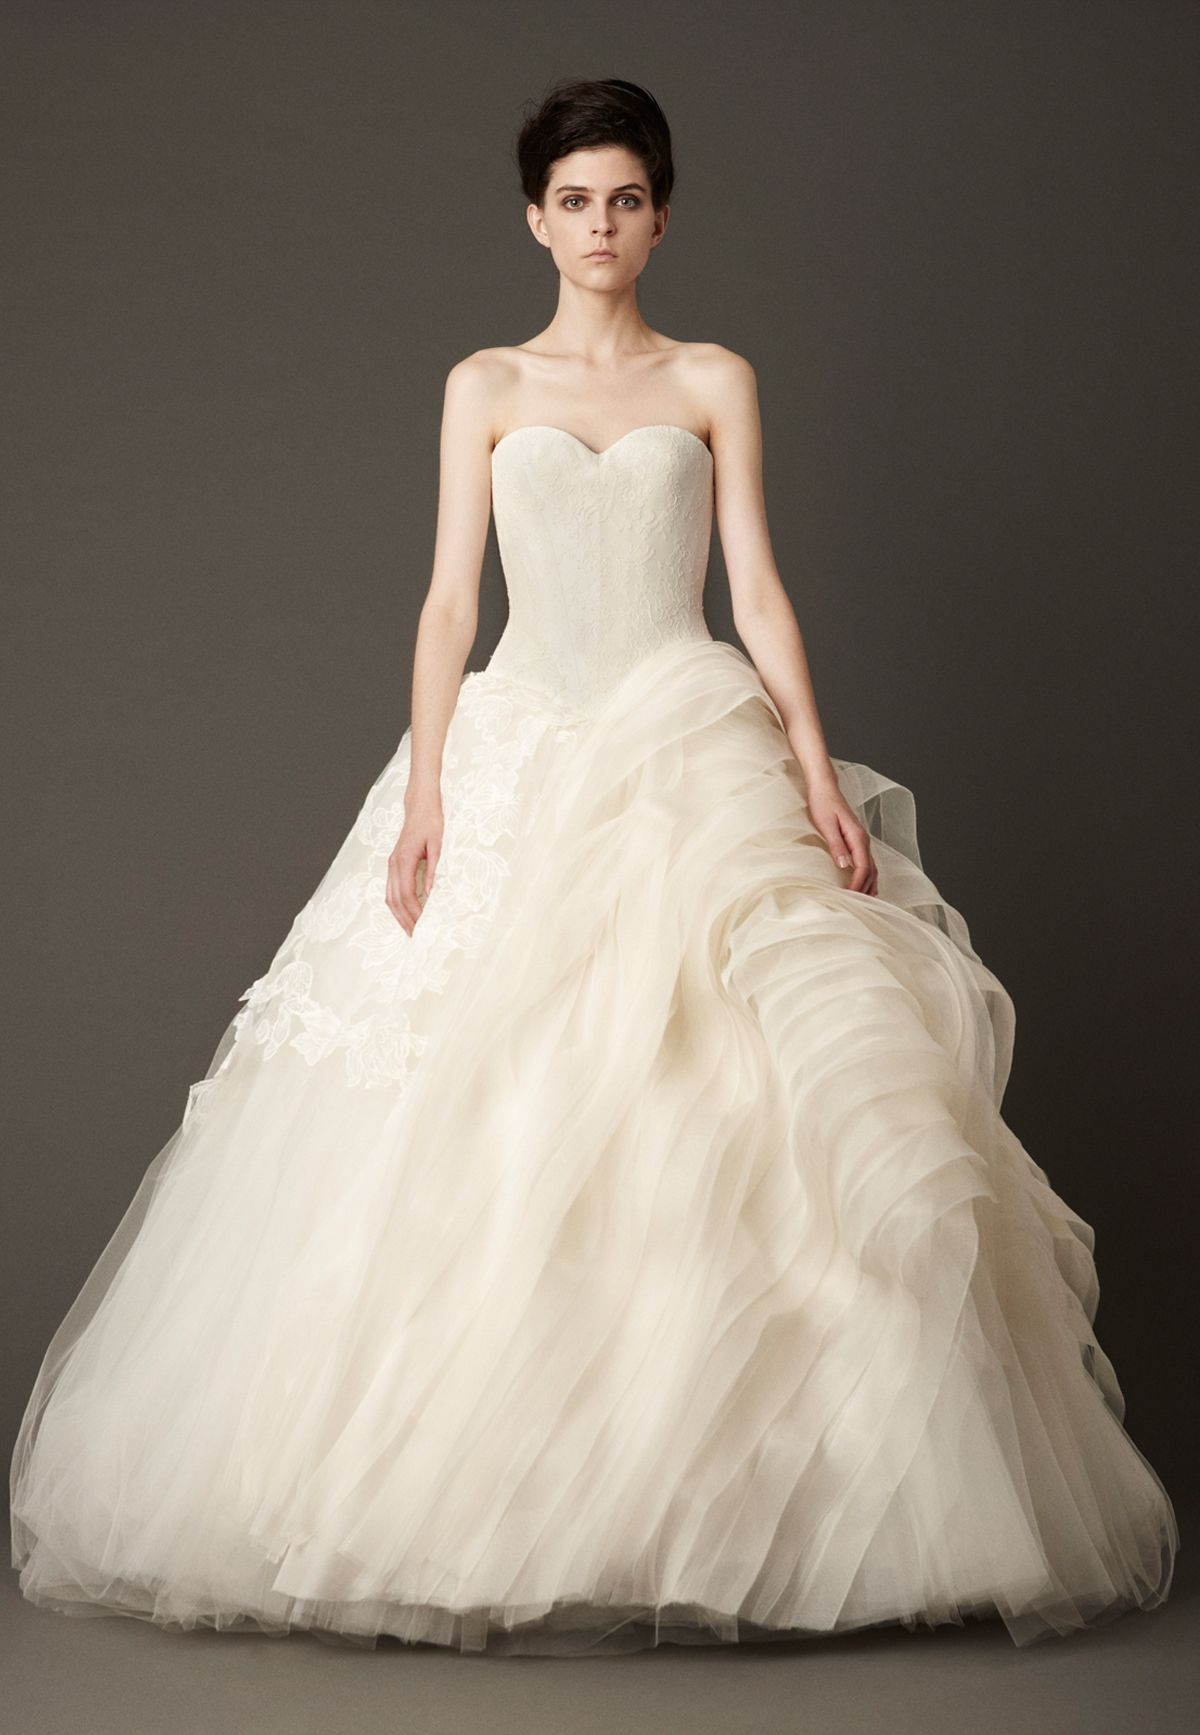 Vera wang lace wedding dress  Wedding Dresses Bridal Gowns by Vera Wang  Fall   Weddings